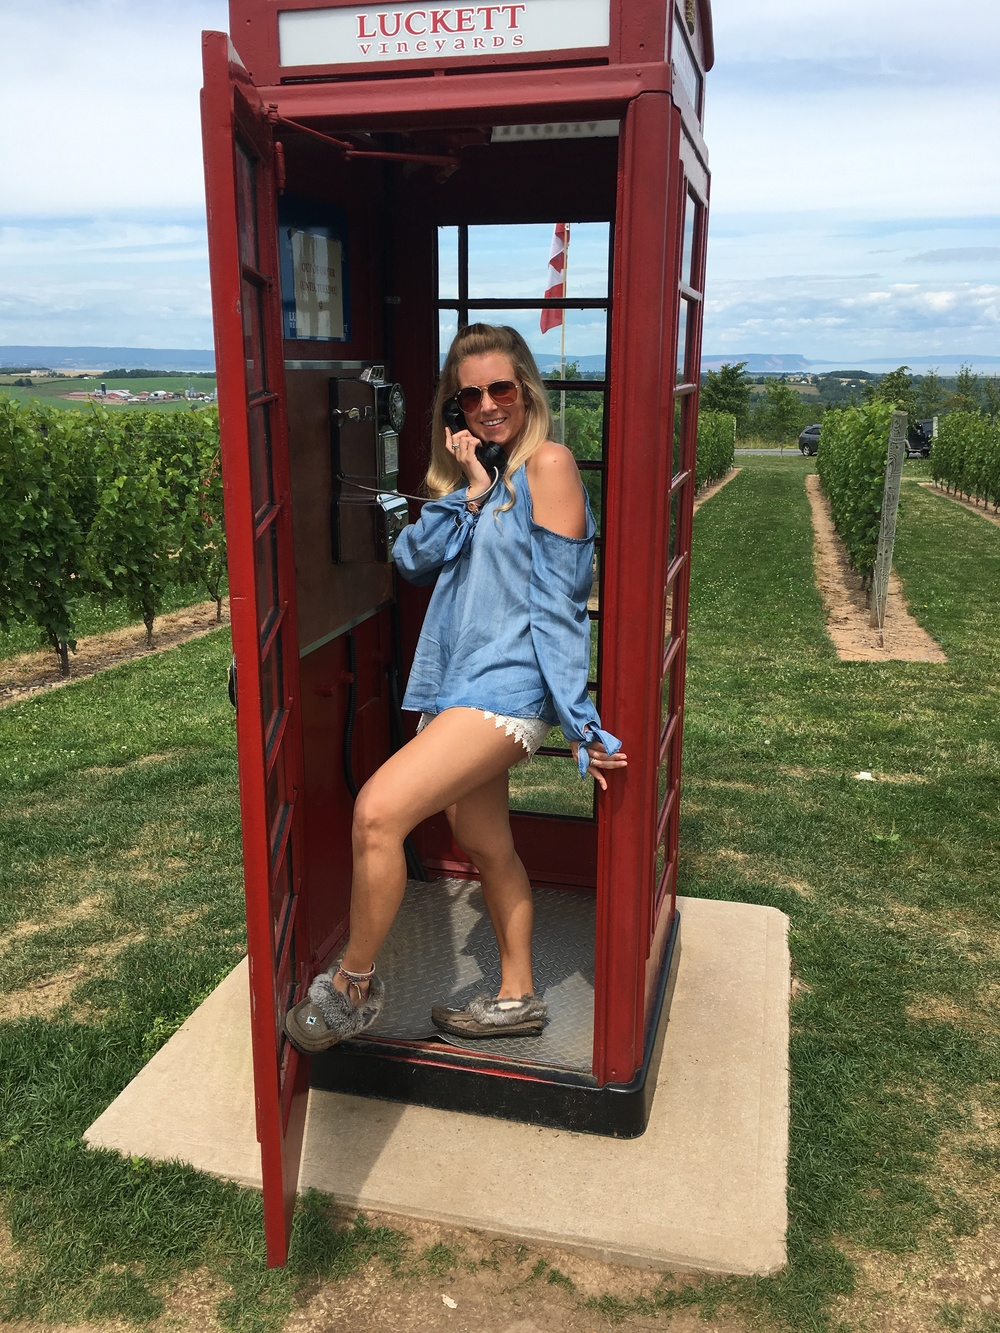 Red Telephone Booth amongst a Vineyard!